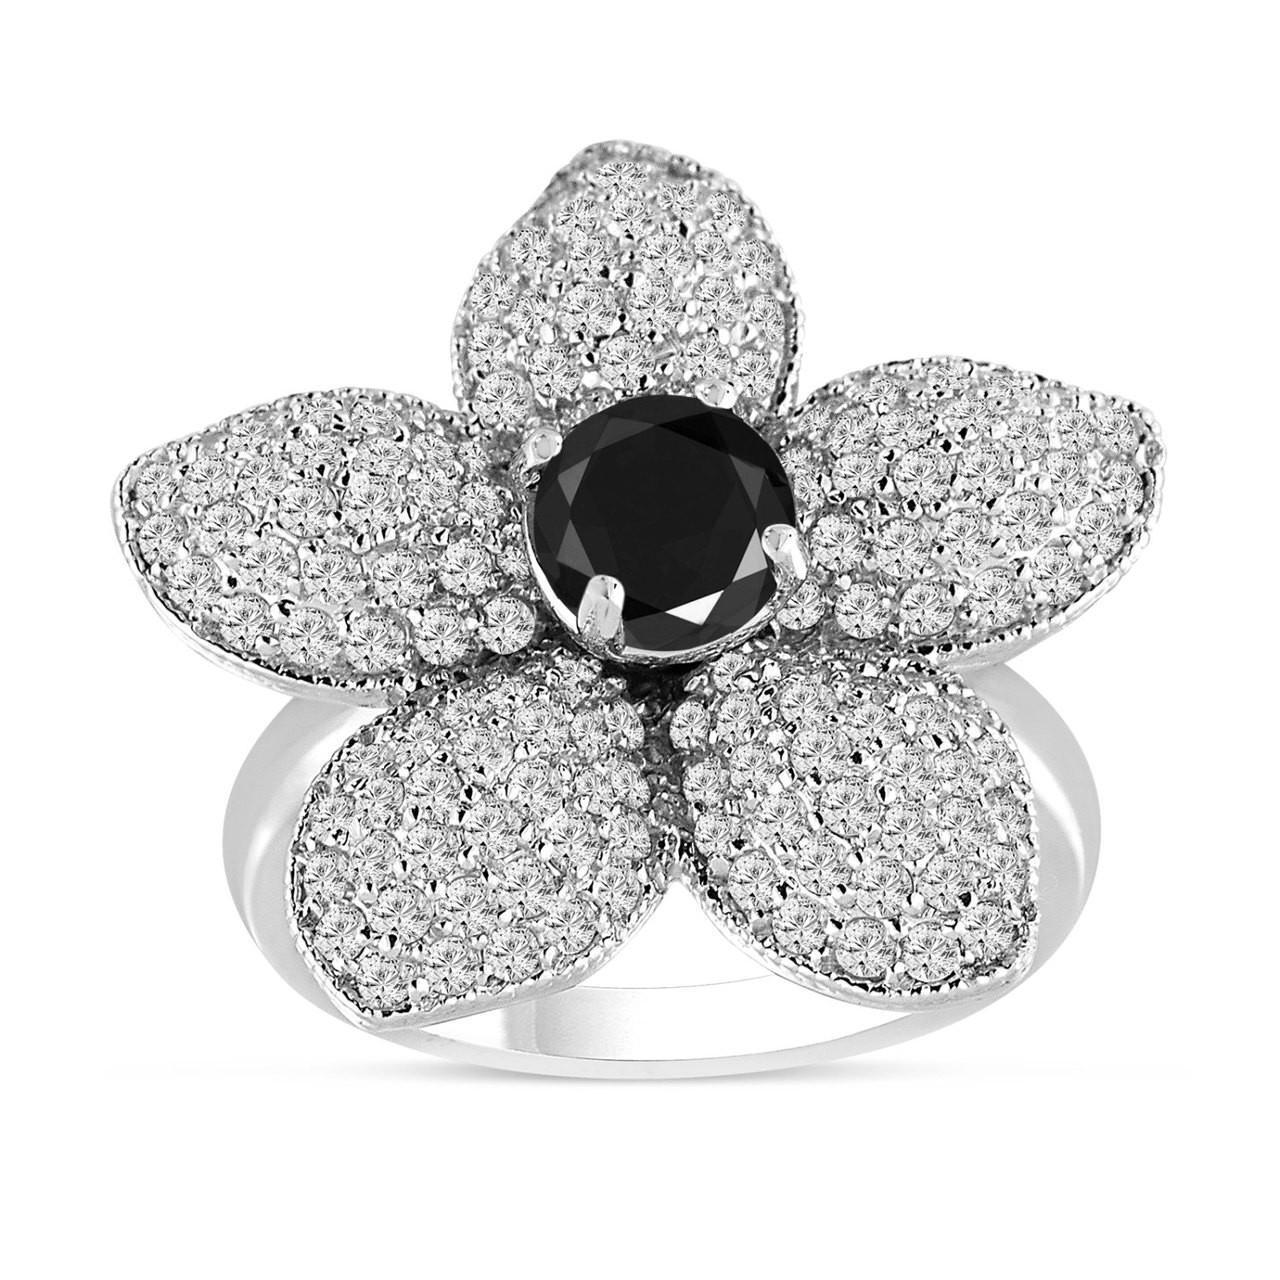 Fancy Black Diamond Flower Engagement Ring 265 Carat 14k White